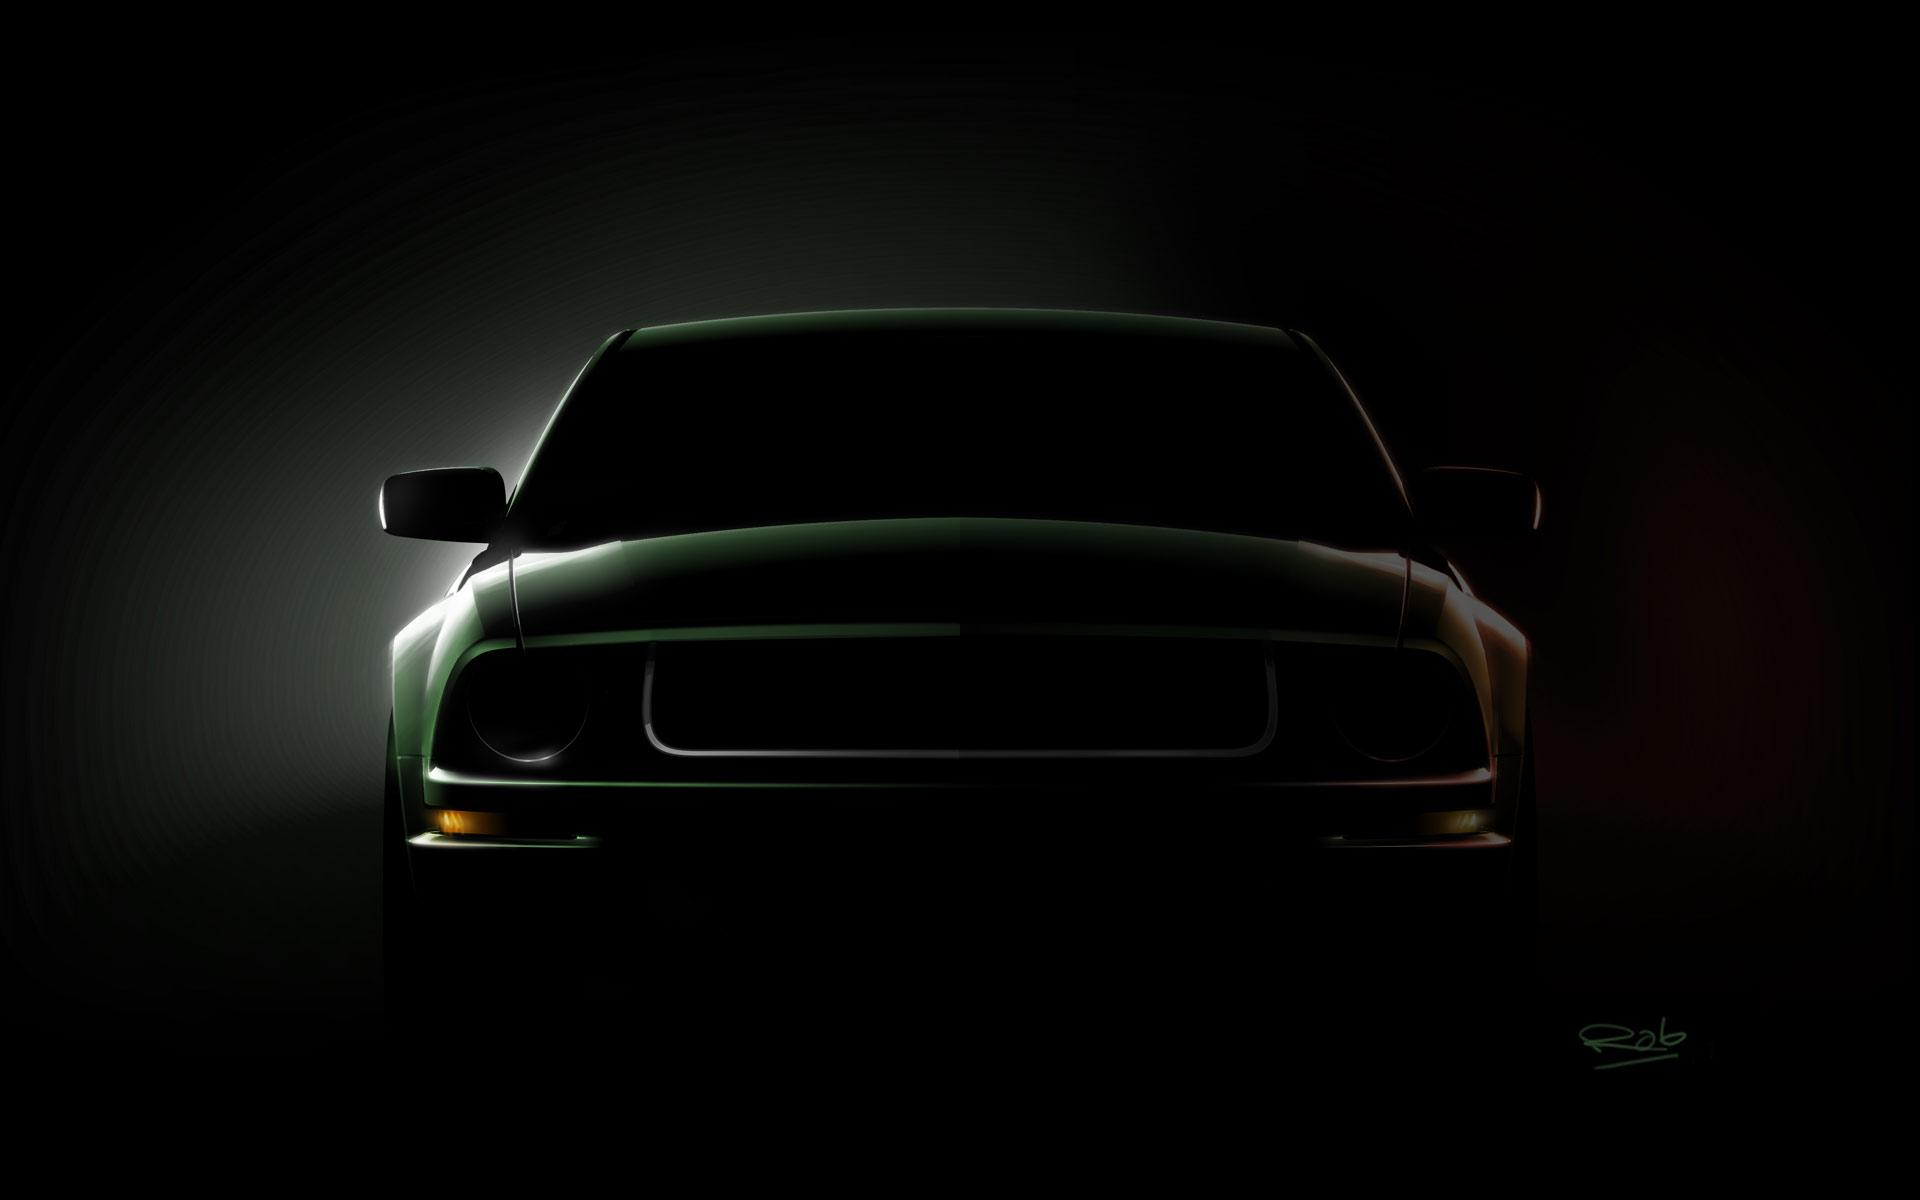 Cars Wallpapers Ford mustang